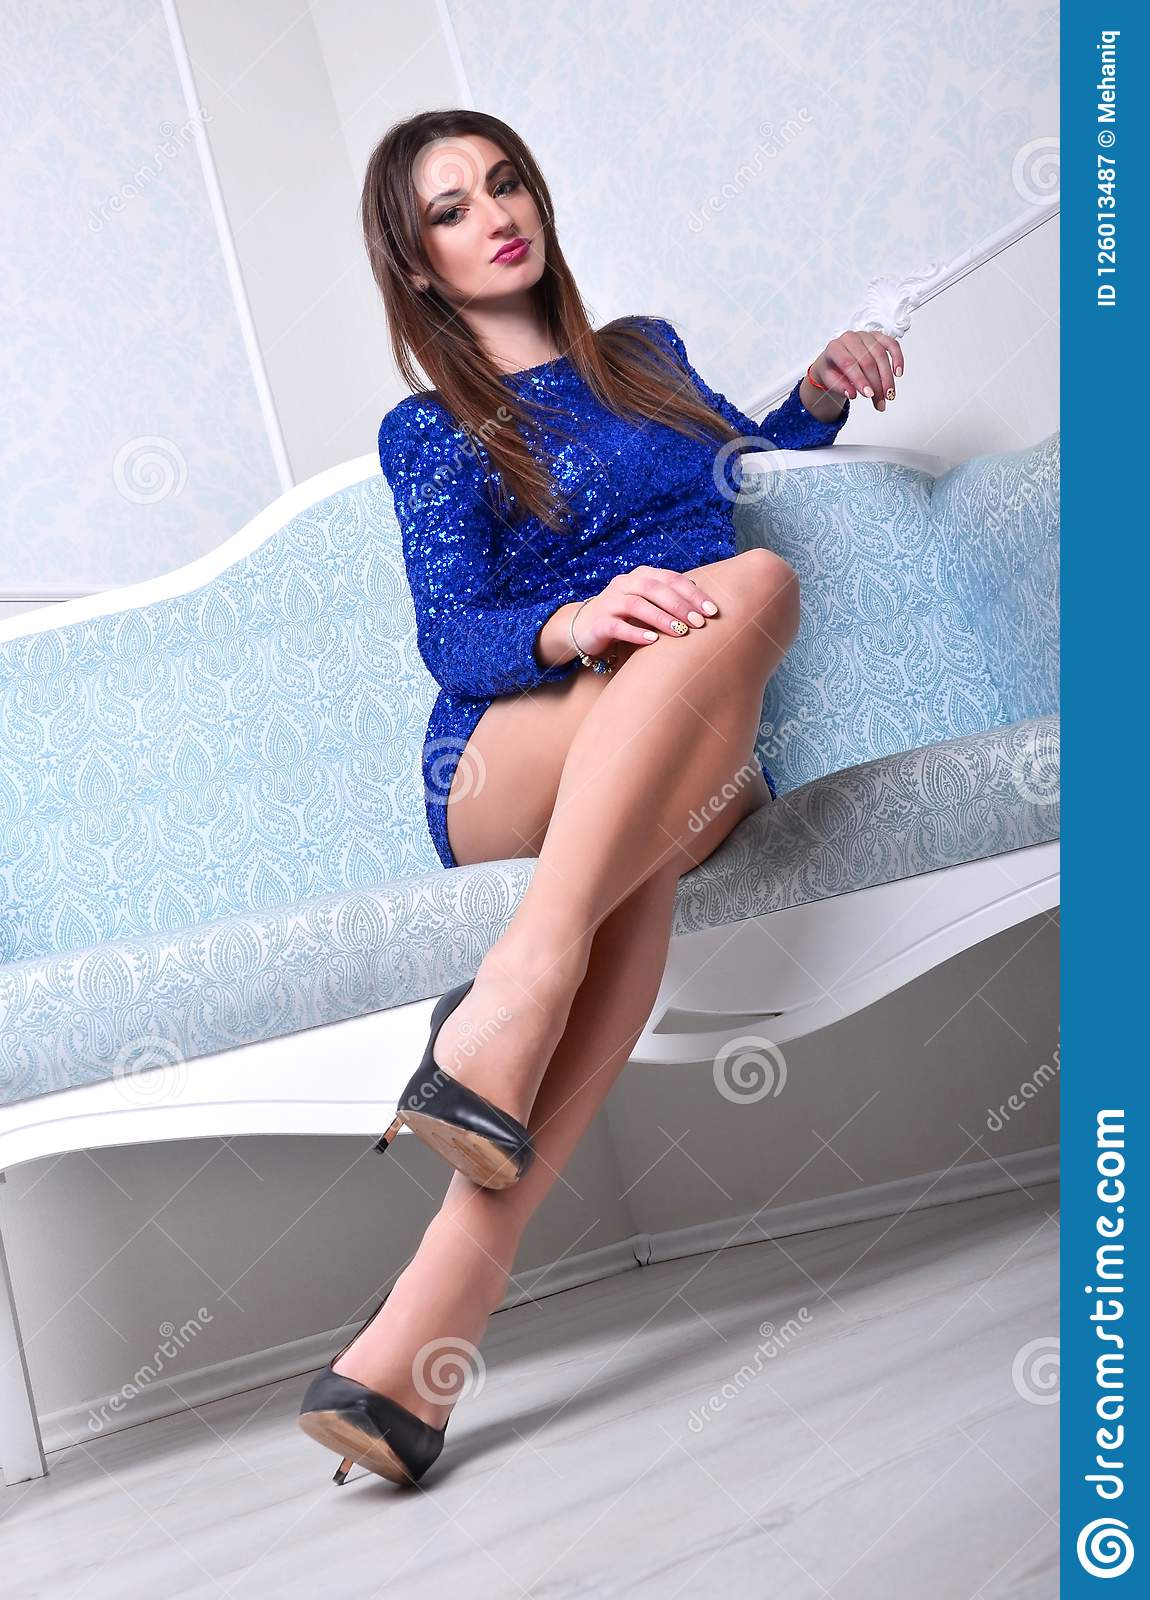 Girl sitting on the blue couch